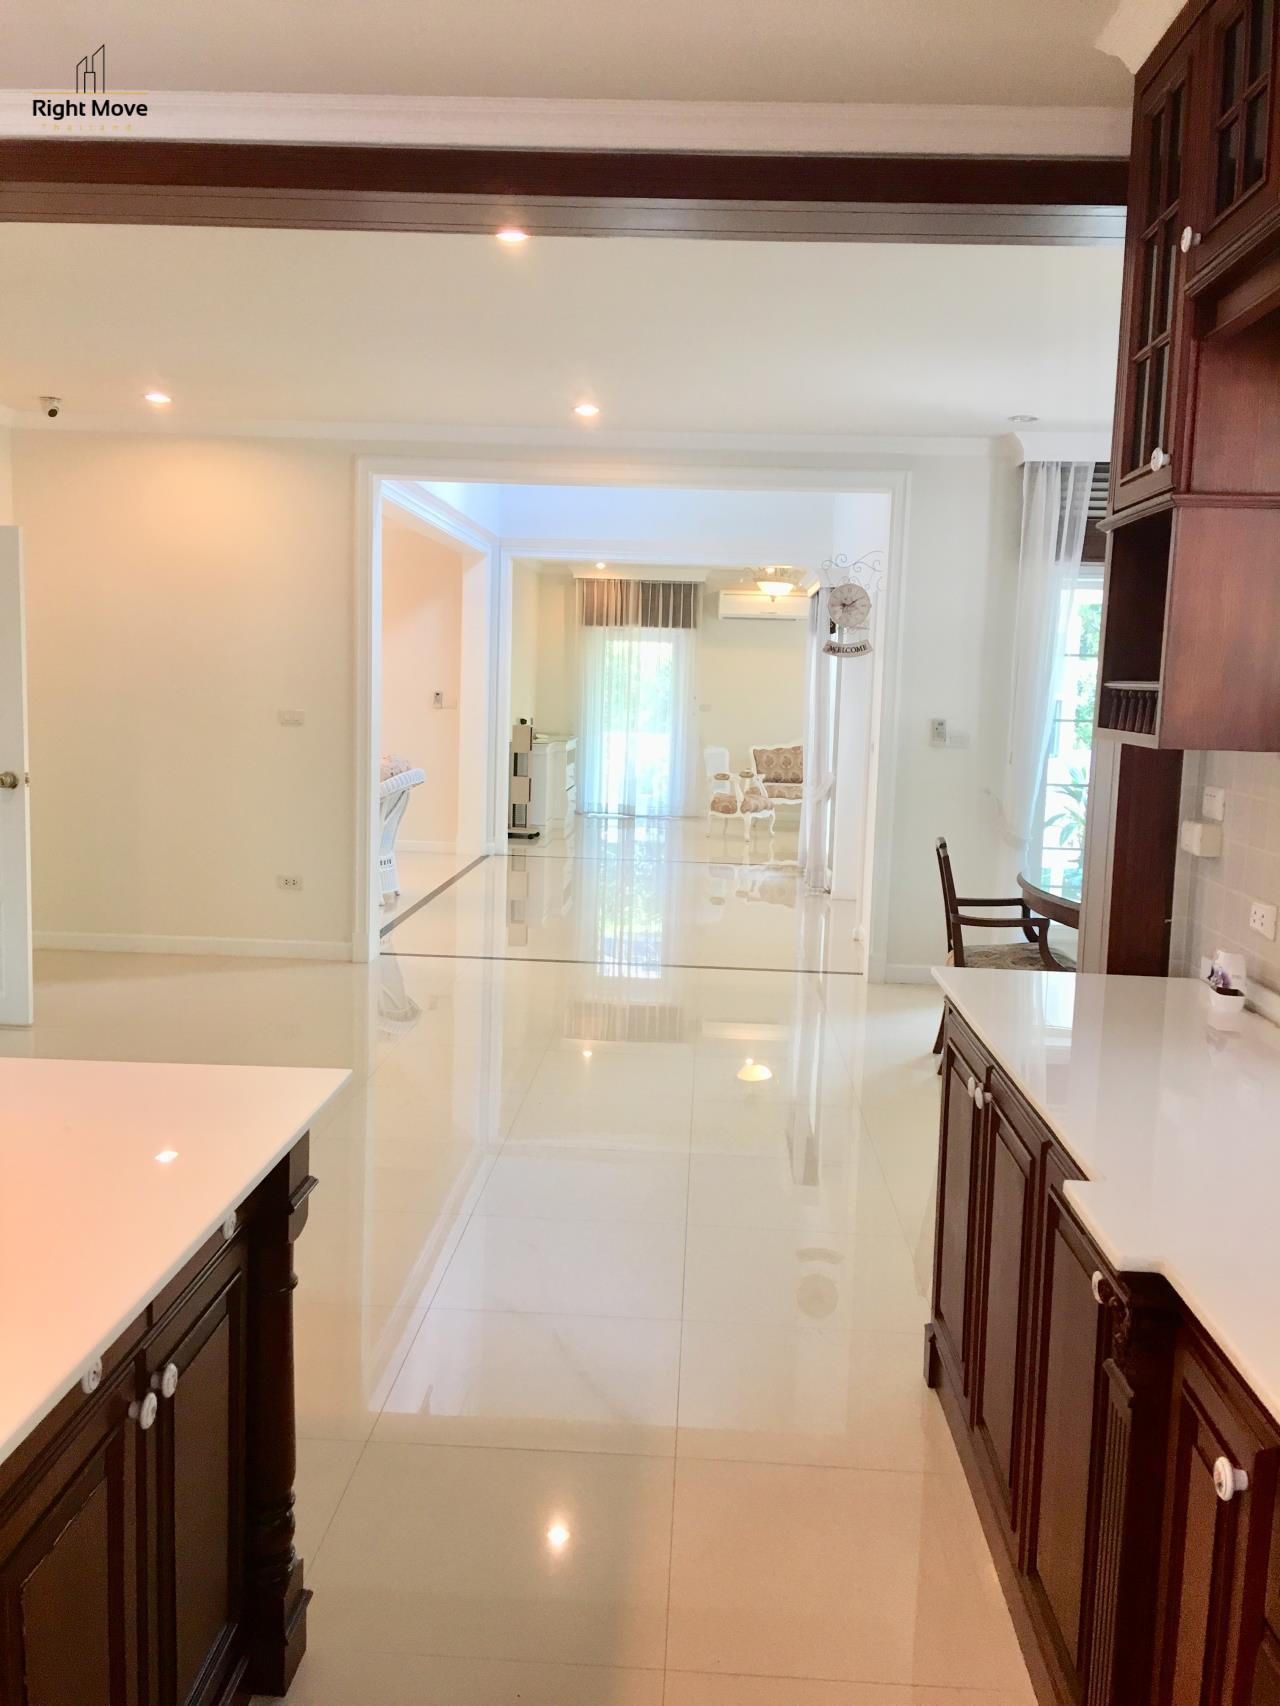 Right Move Thailand Agency's HR321 House for rent - 170,000 THB - 4 Bedrooms - 500 Sqm - Private Pool 8